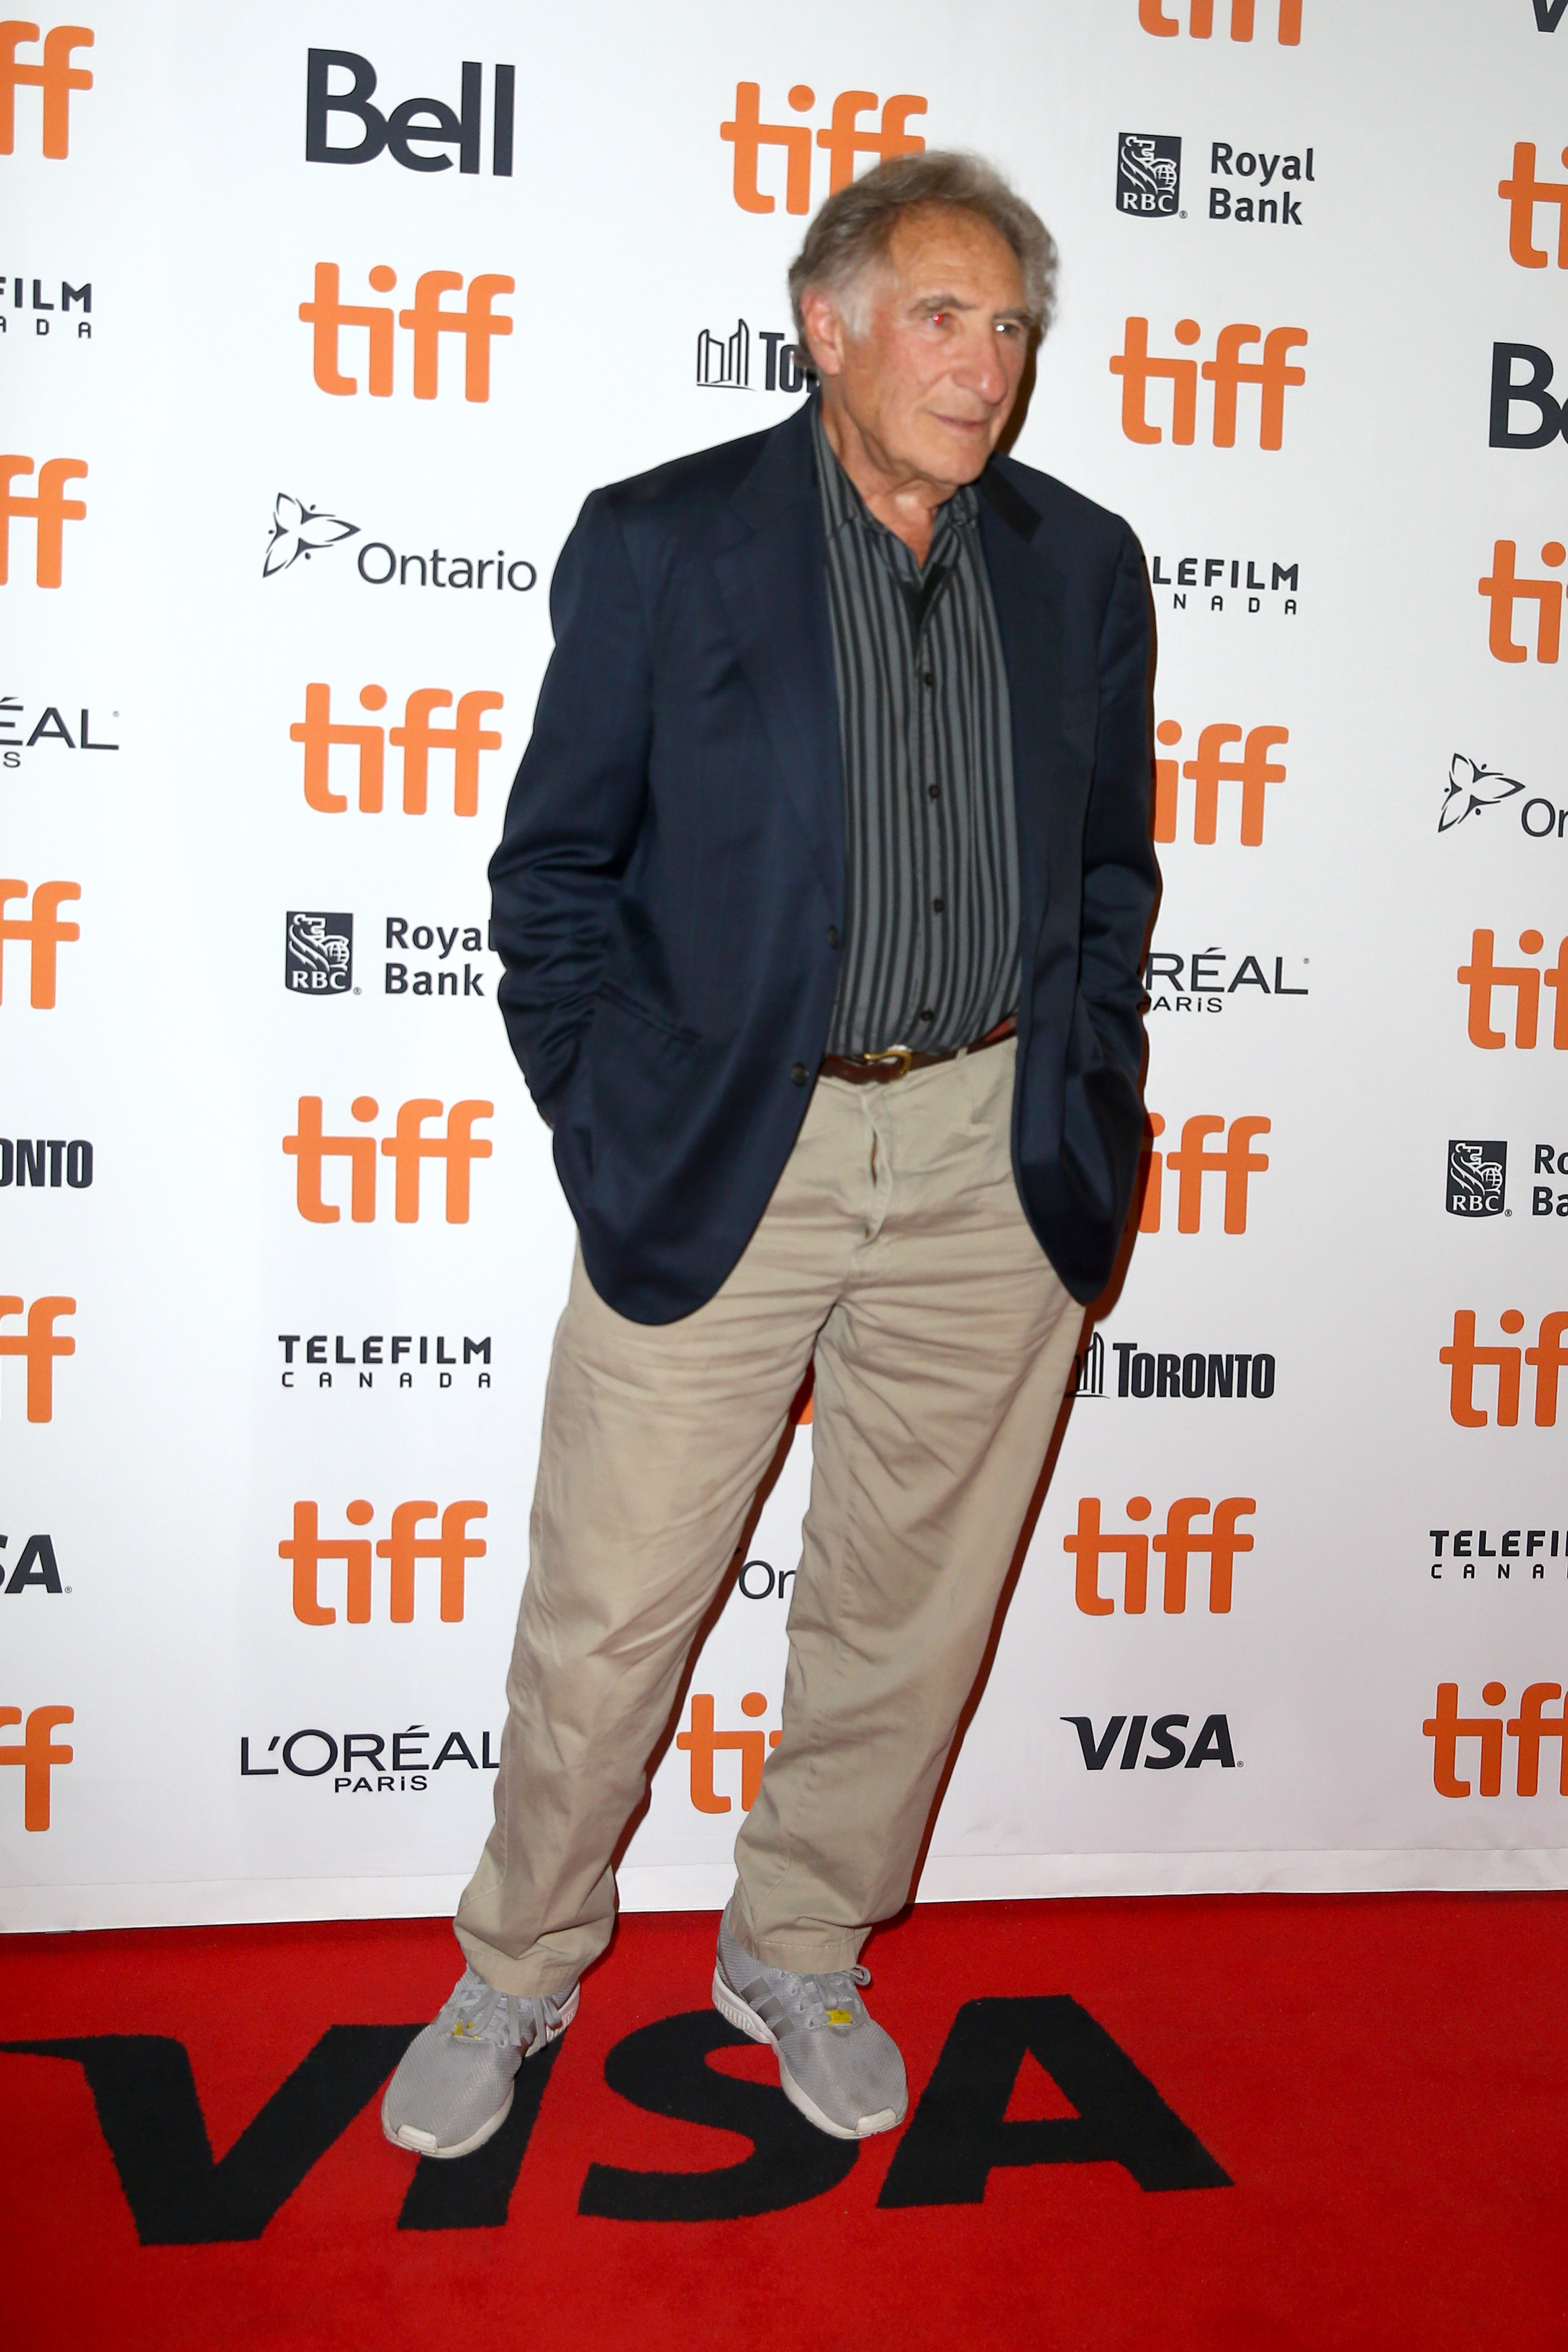 Judd Hirsch on September 09, 2019 in Toronto, Canada | Source: Getty Images